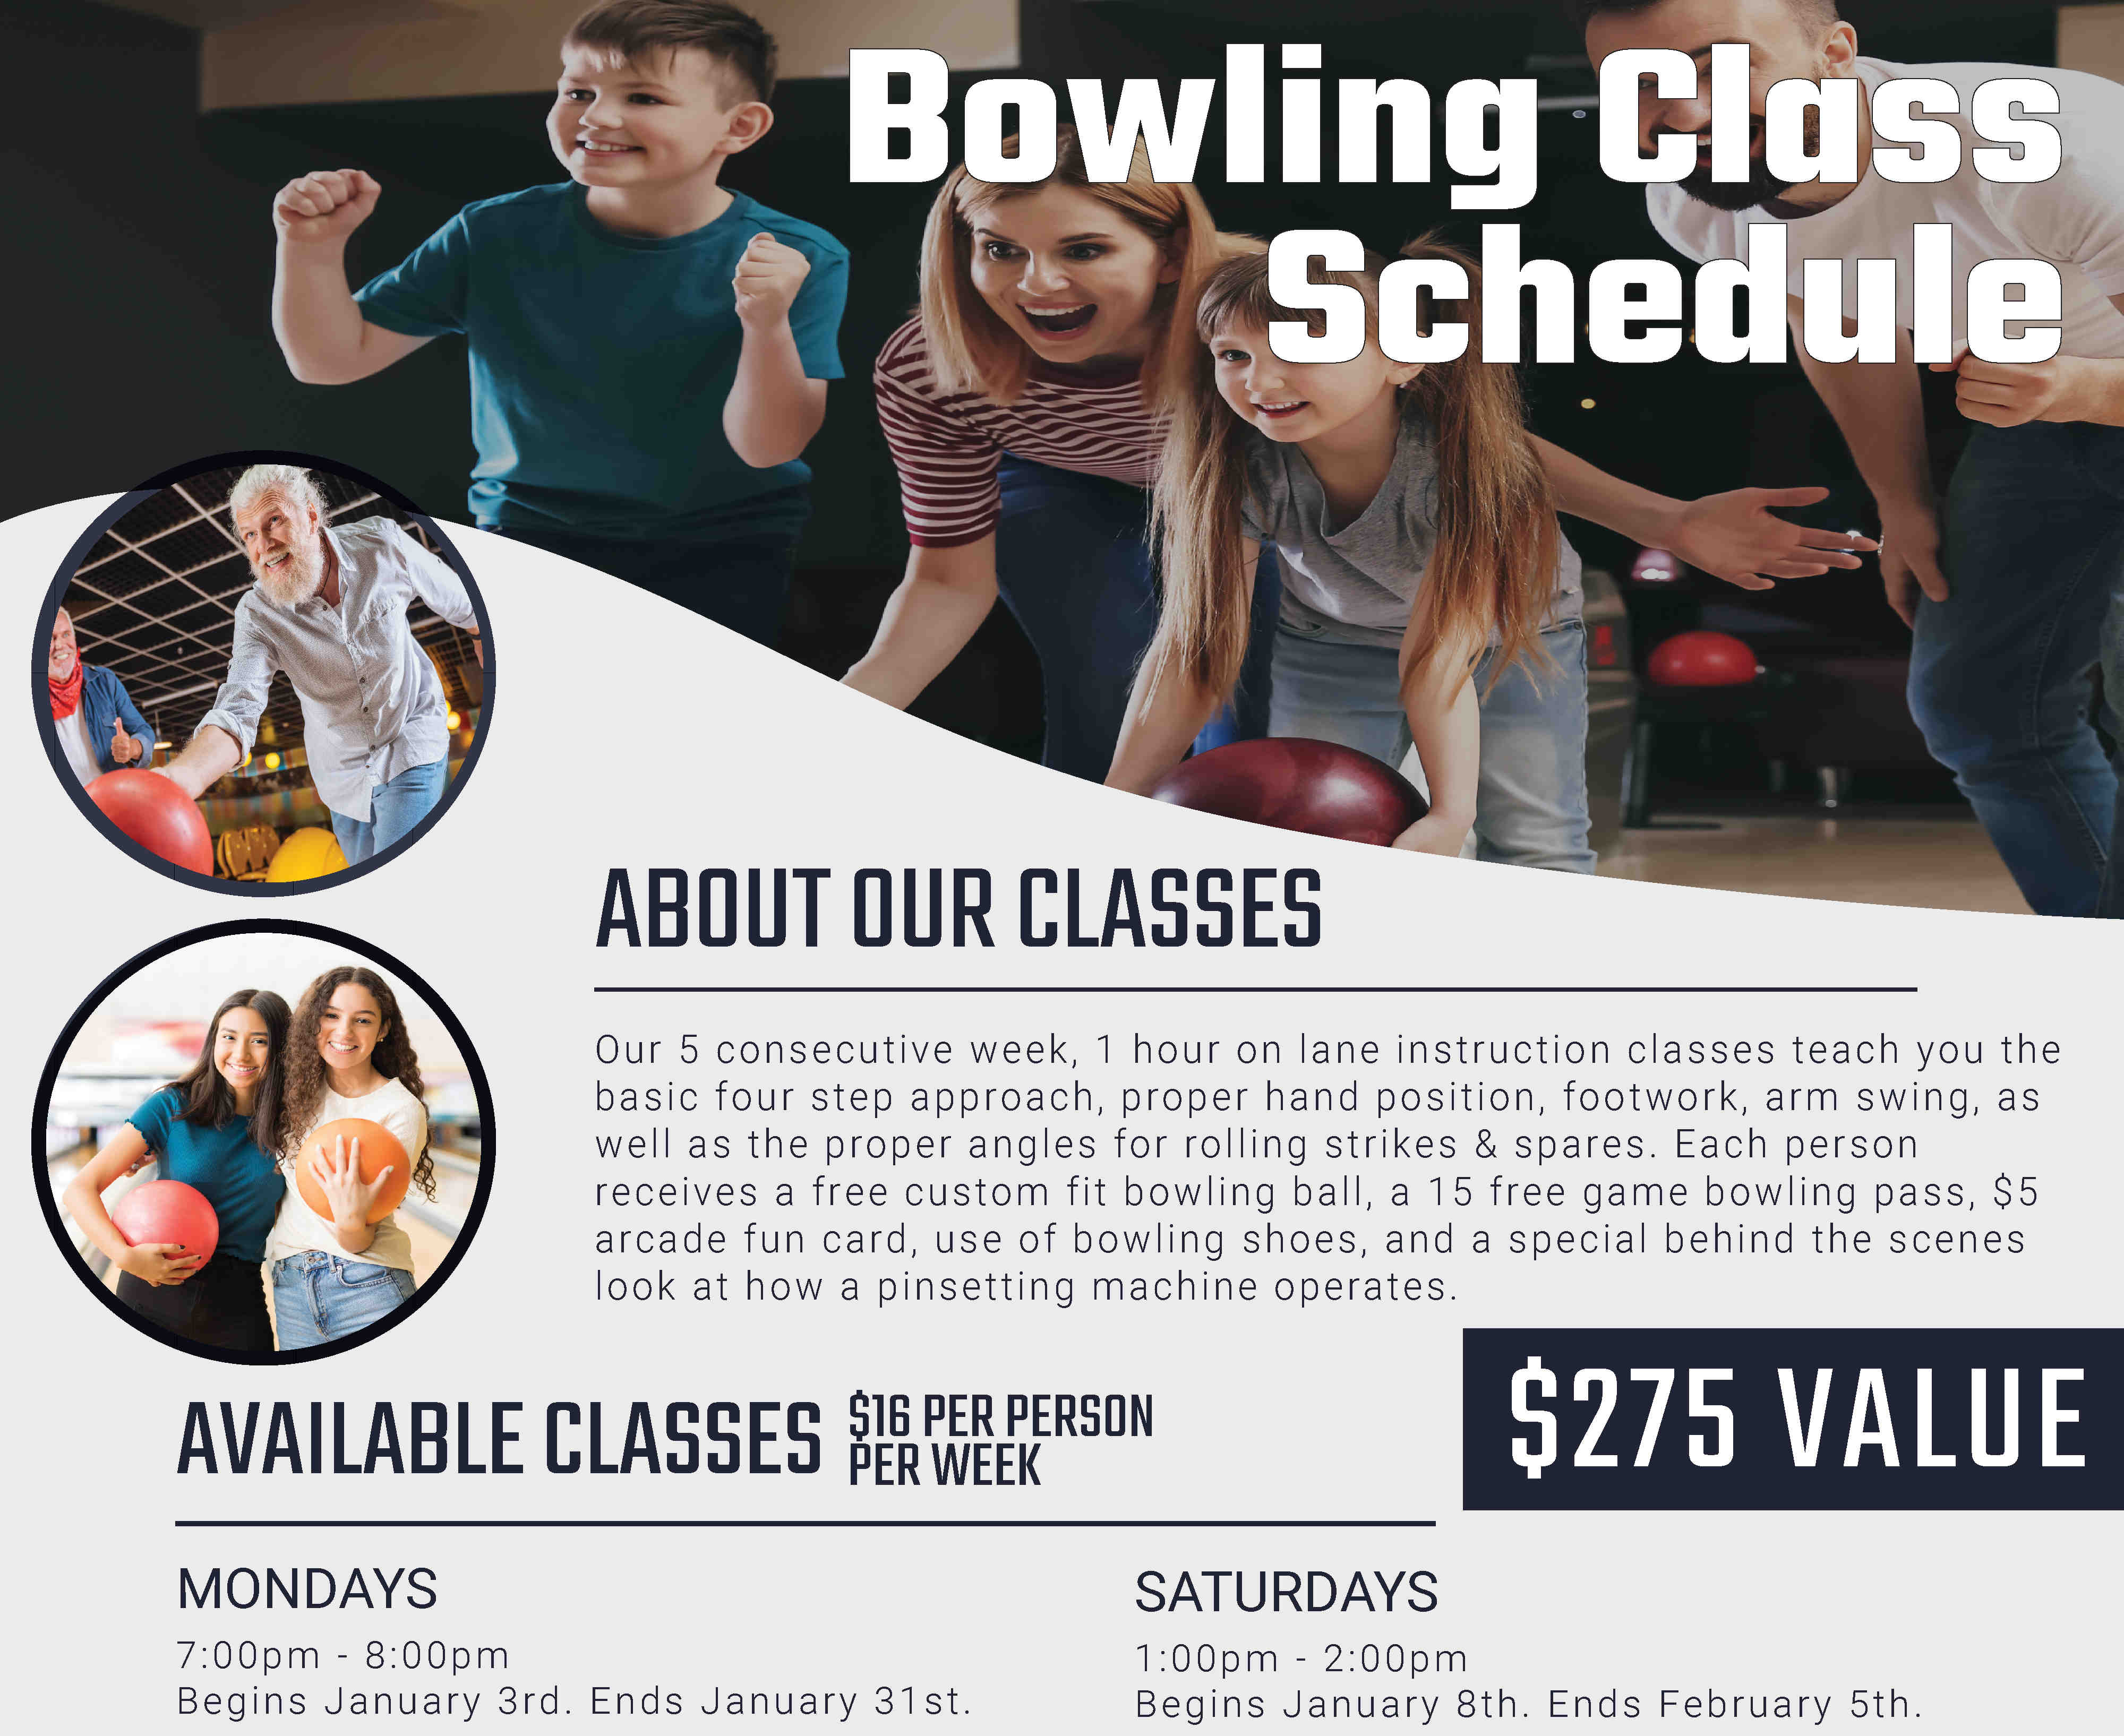 Bowling class schedule and information